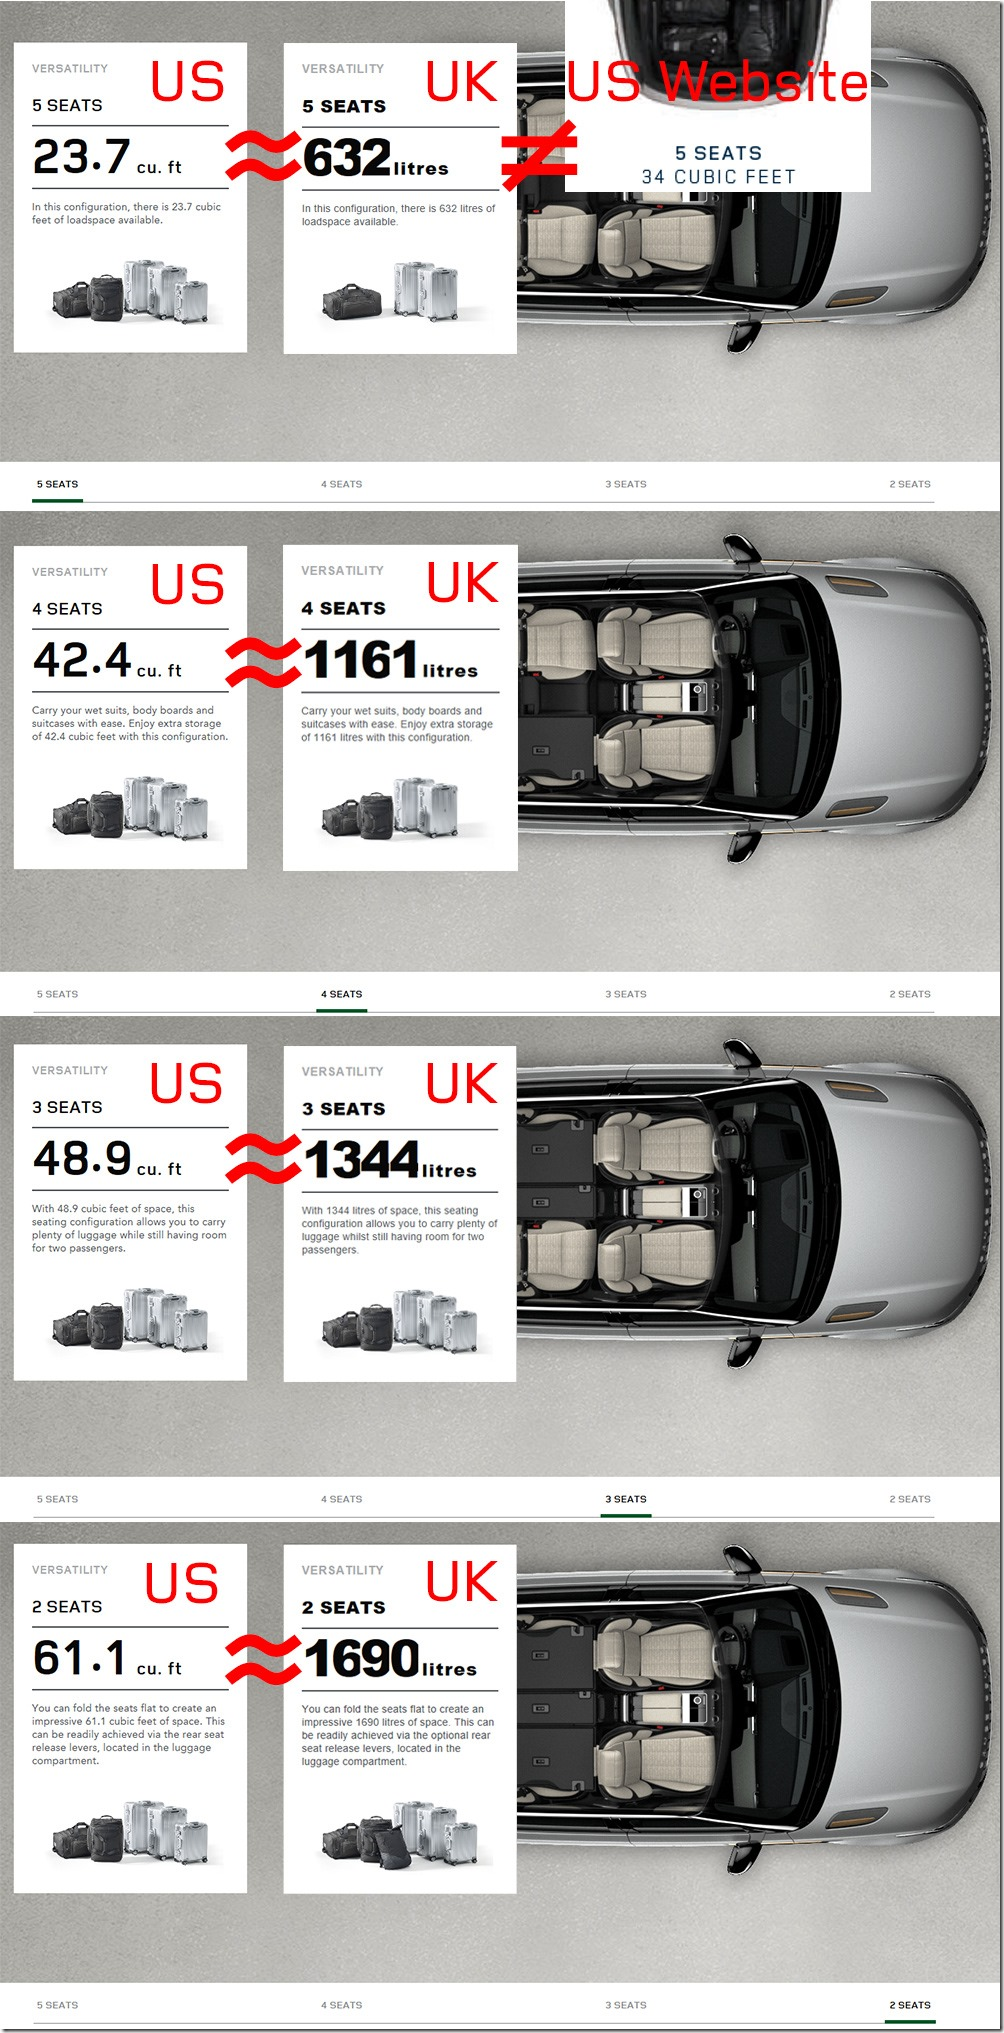 l560-cargo-comparo-us-uk